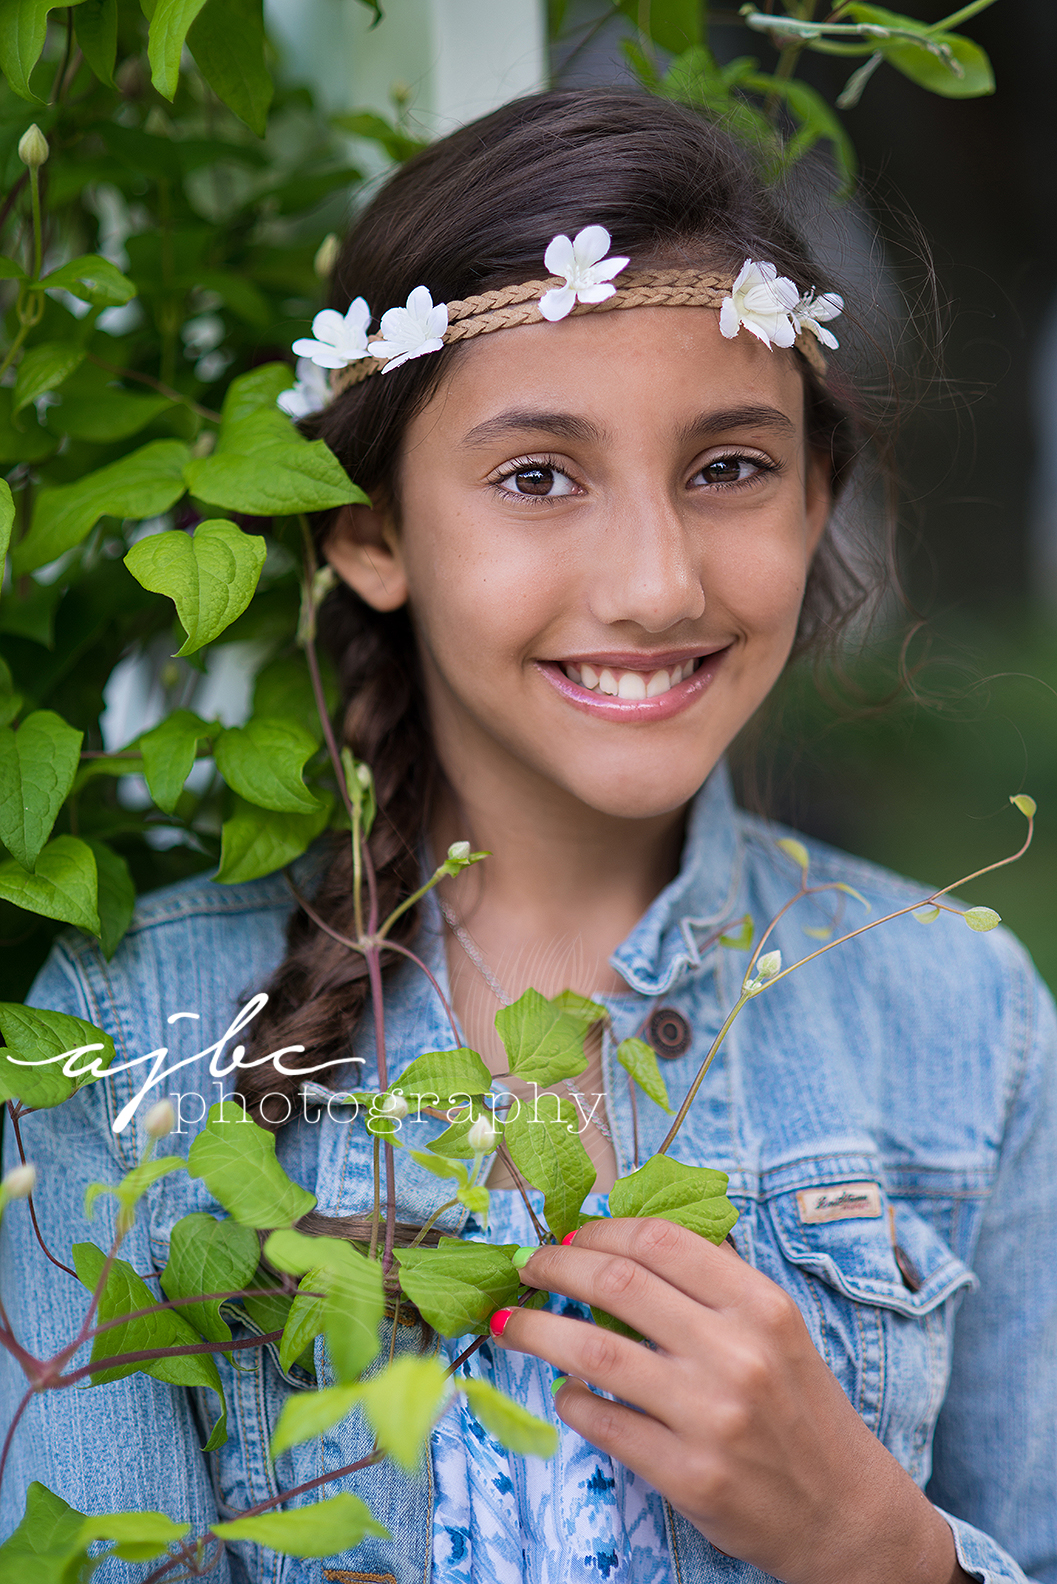 ajbcphotography-porthuron-michigan-family-photographer-outdoors-picnic-brother-sister-mother-portraits-child-photographer-family-fun-flower-child-michigan-photographer.jpg